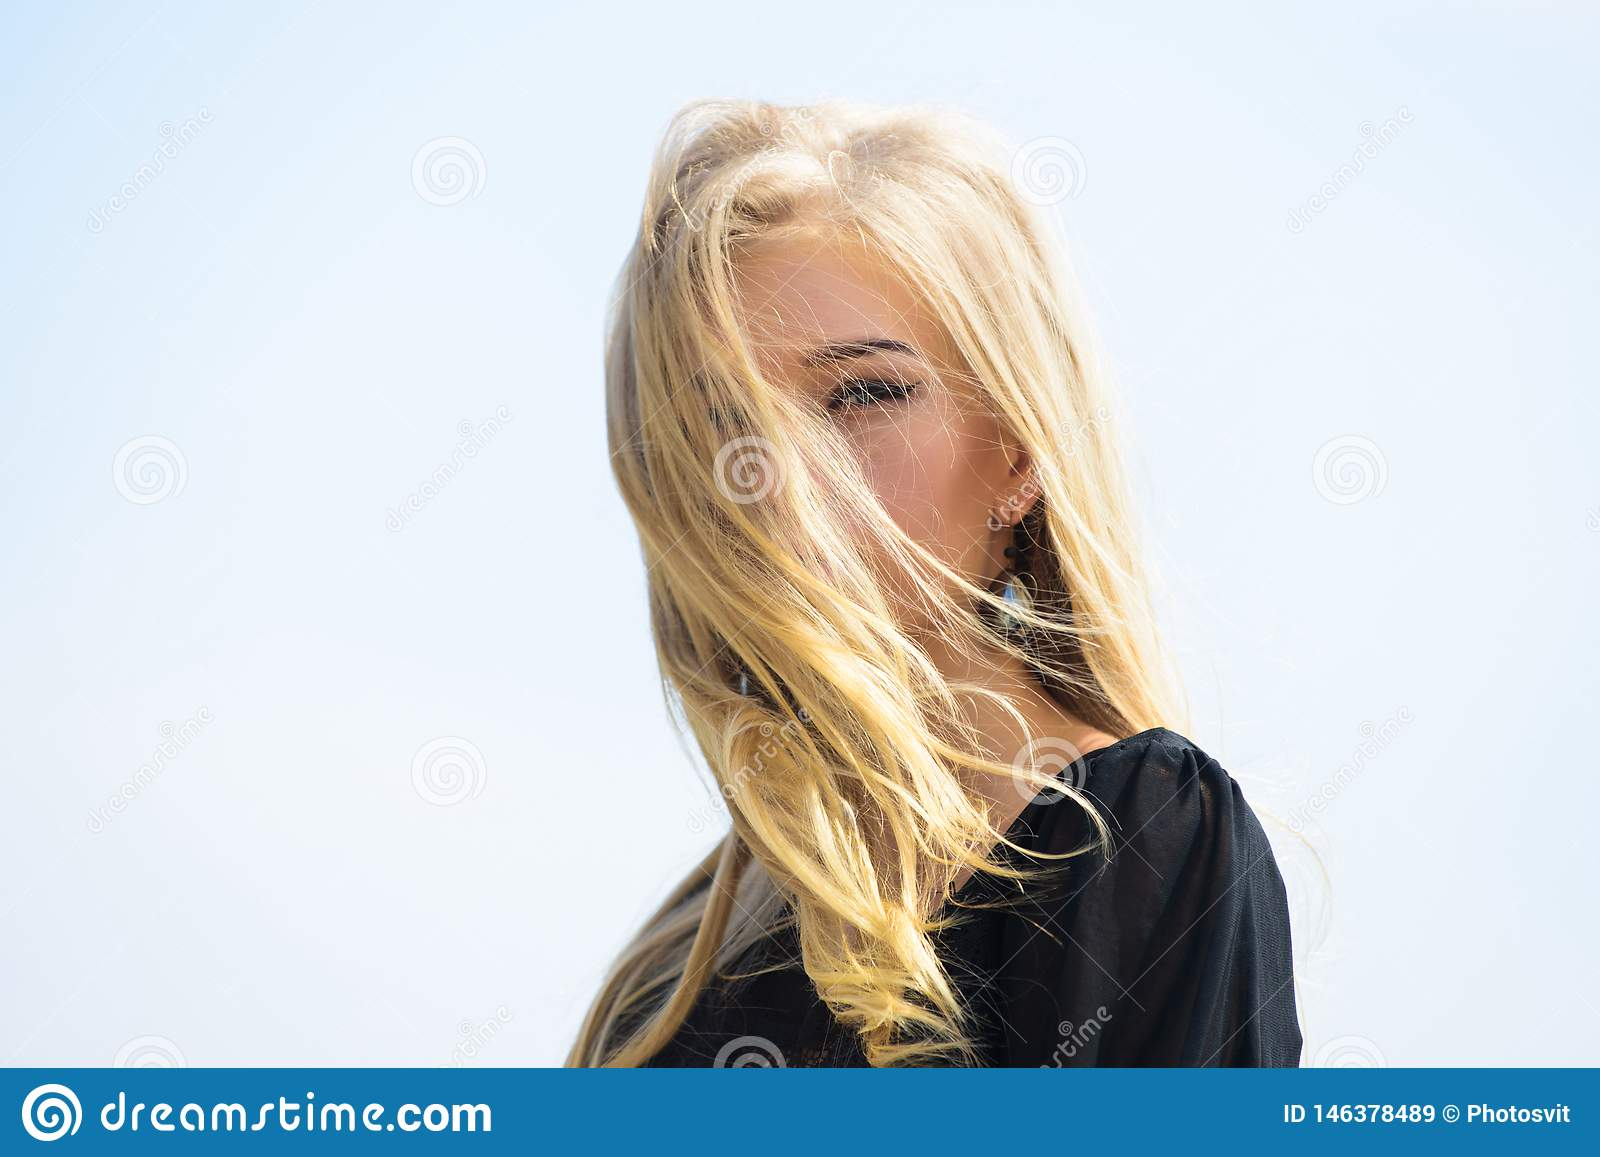 Girl tender blonde makeup face sky background. Bleaching roots. How to repair bleached hair fast and safely. How to take